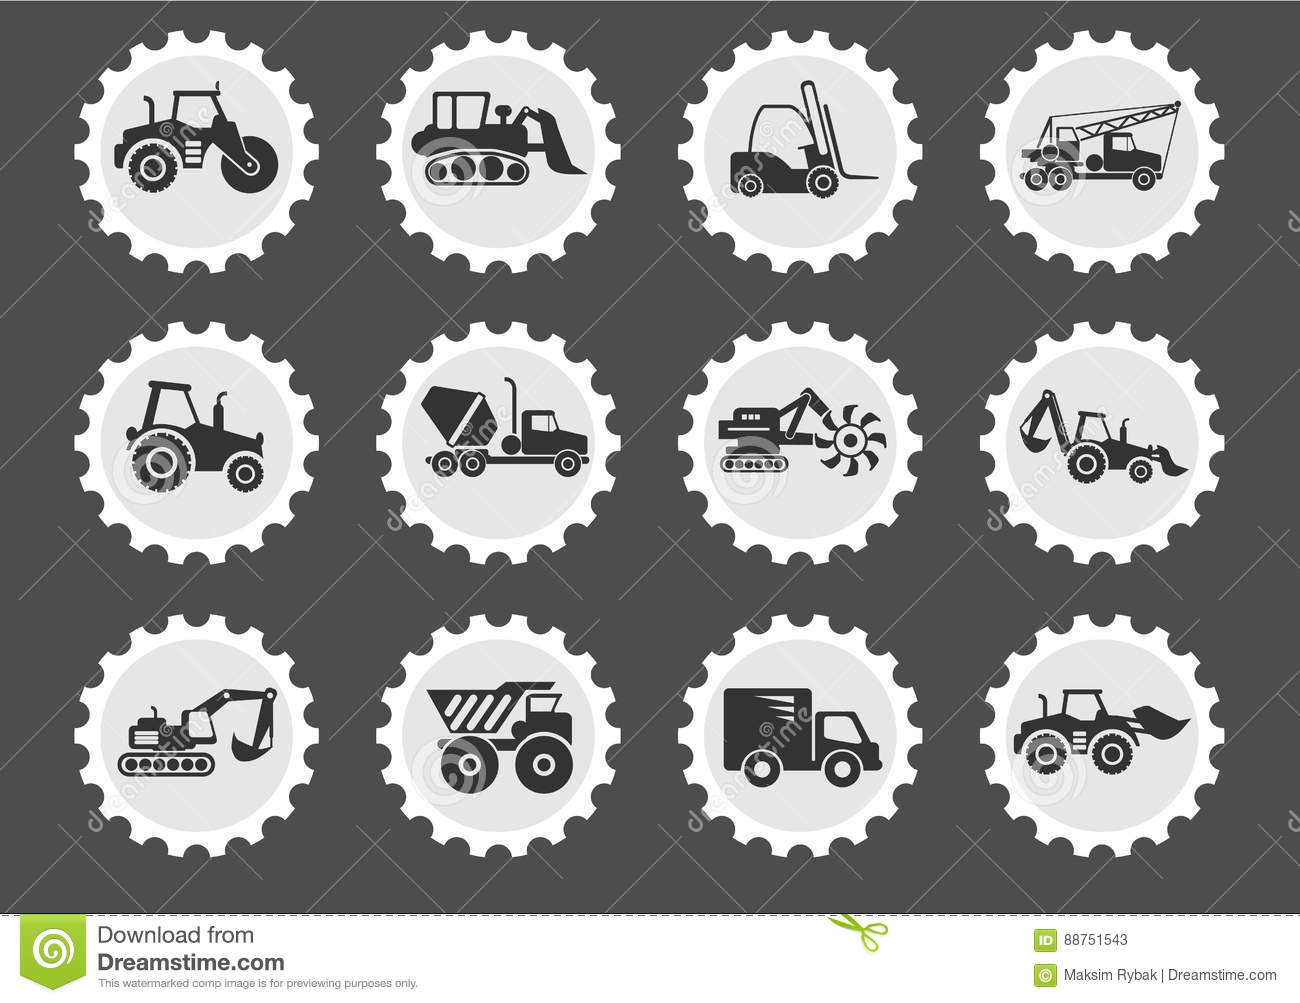 Symbols of construction machines stock illustration illustration symbols of construction machines buycottarizona Image collections